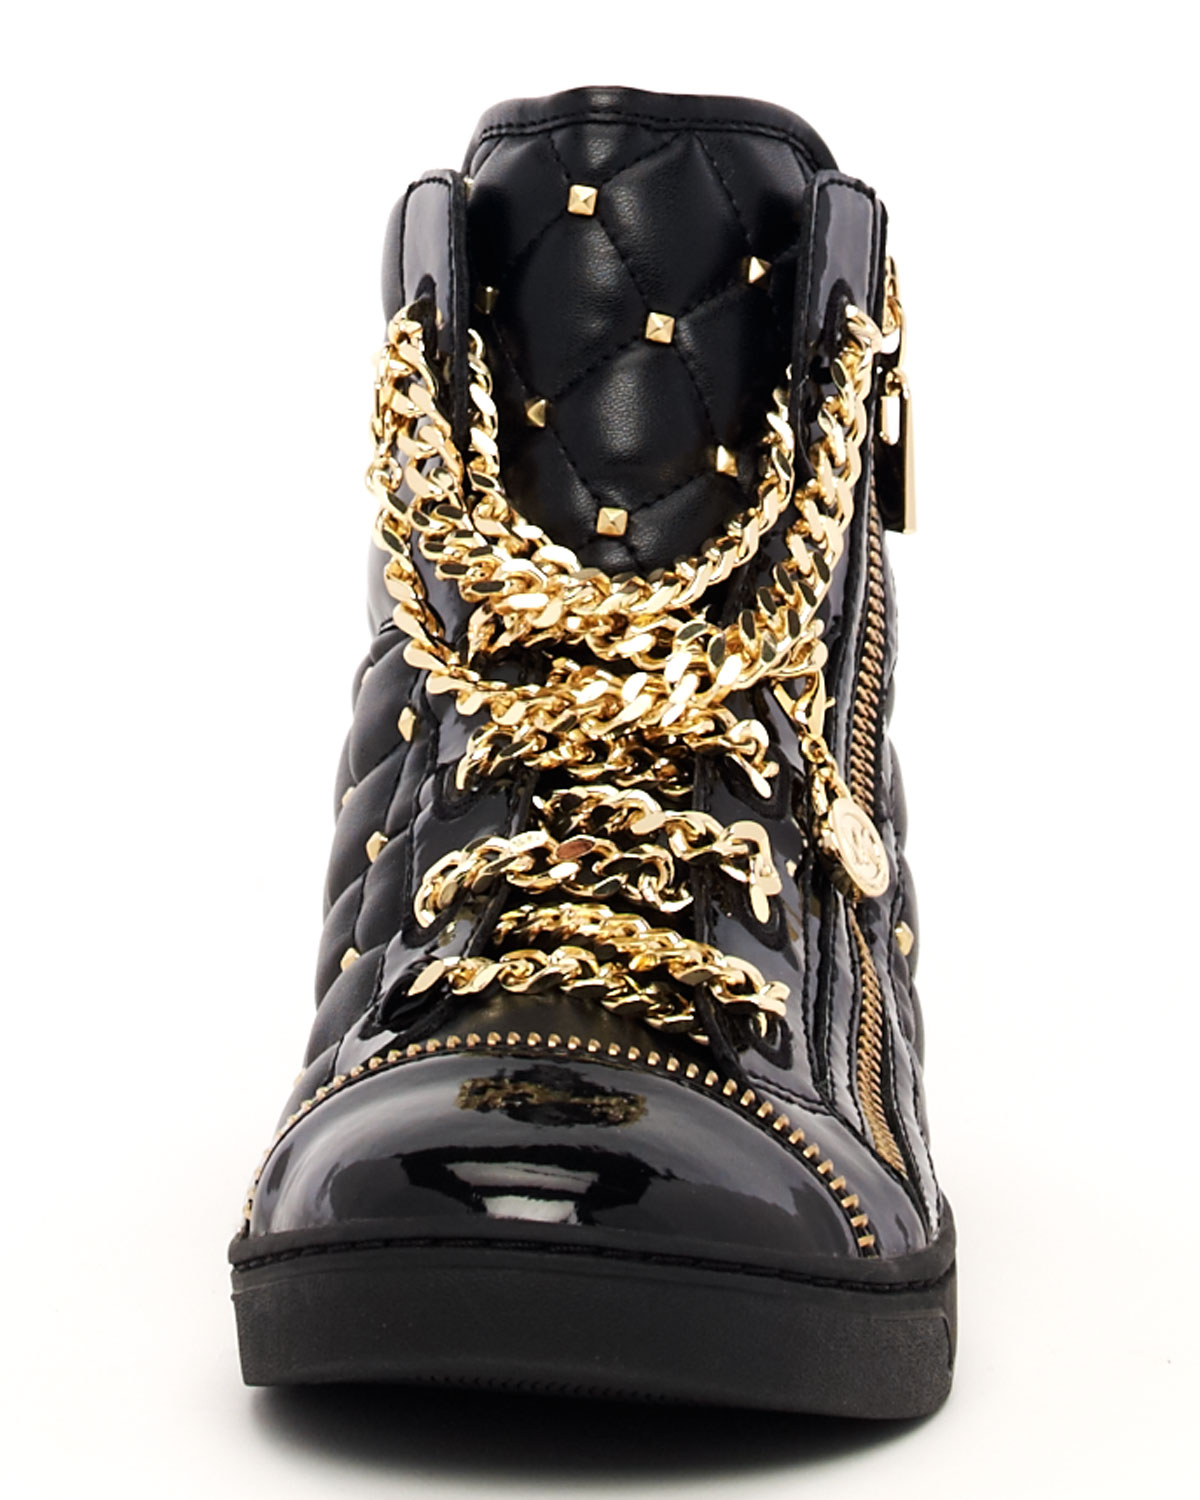 4f501ee4b7249 Lyst - Michael Kors Chainlace Quilted Hightop in Metallic